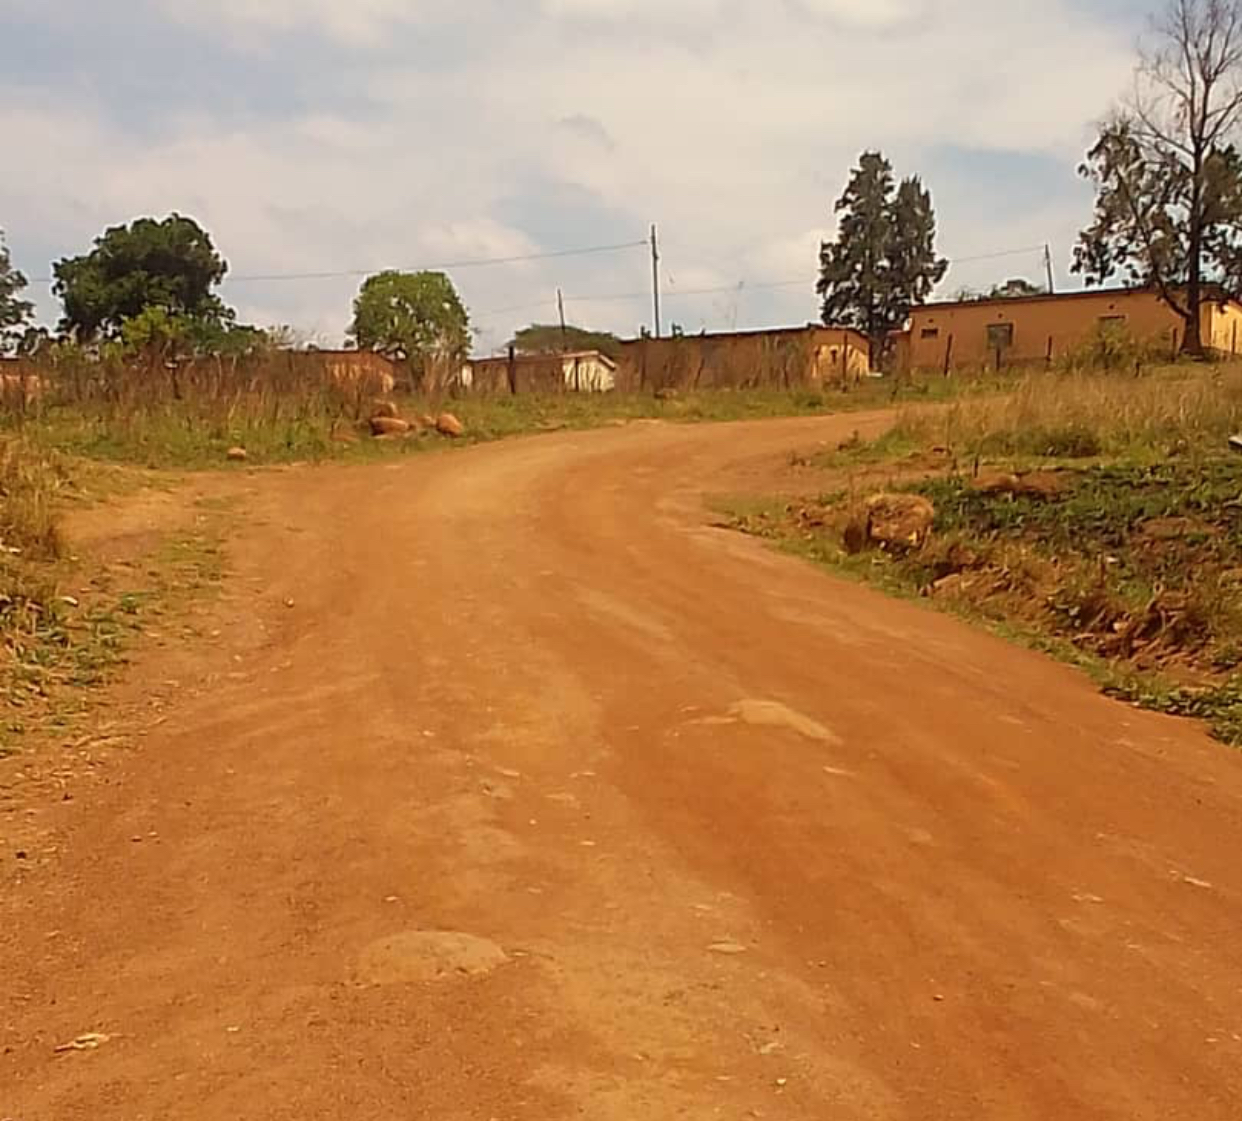 Tension looming at Shiselweni I Inkhundla, residents threaten to protest over poor road condition